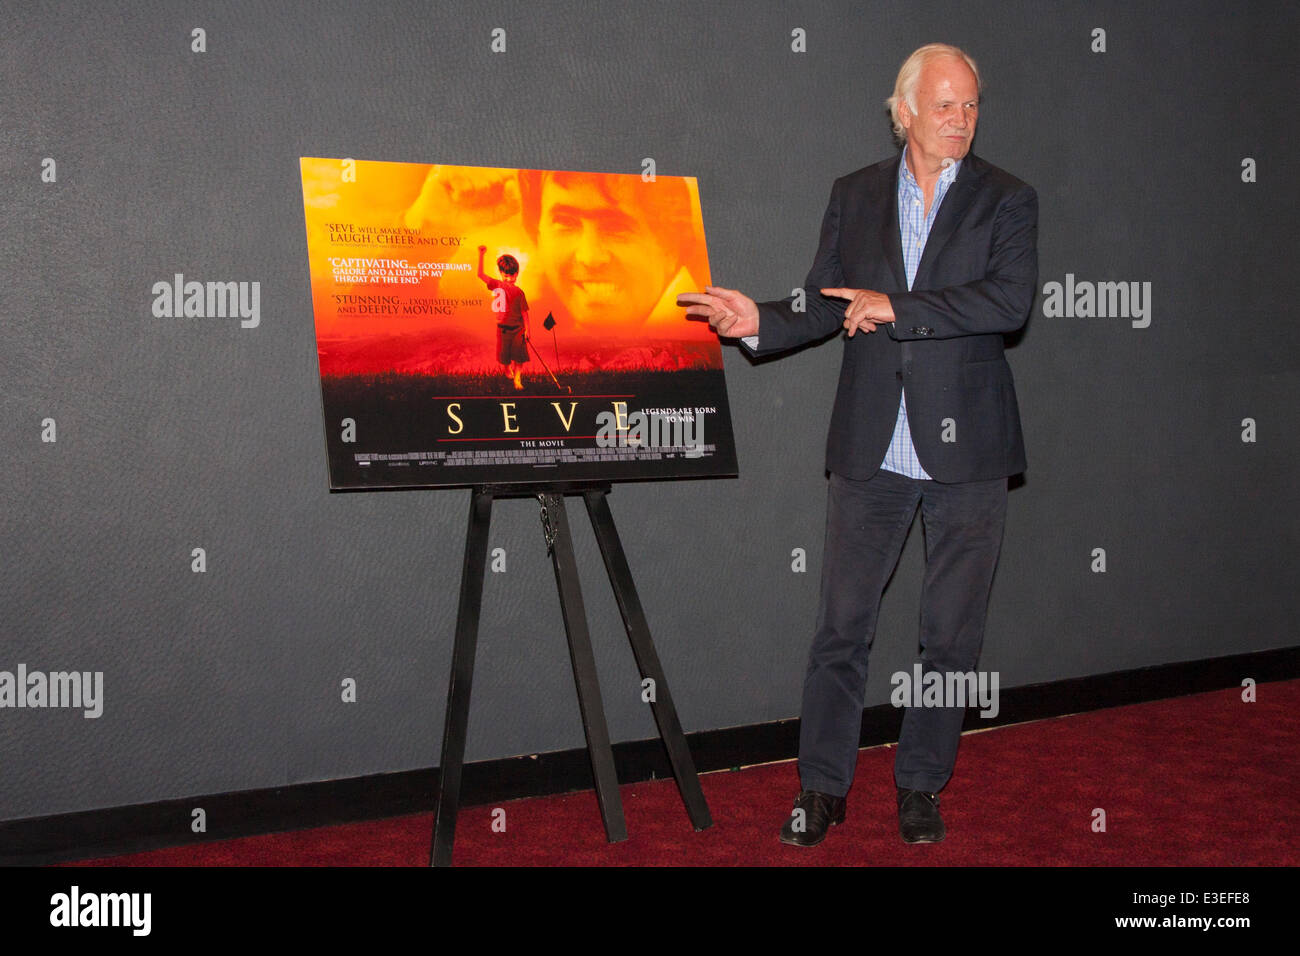 London, UK. 23rd June, 2014. Producer Stephen Evans at the London premiere of his film Seve, a biopic of the life - Stock Image